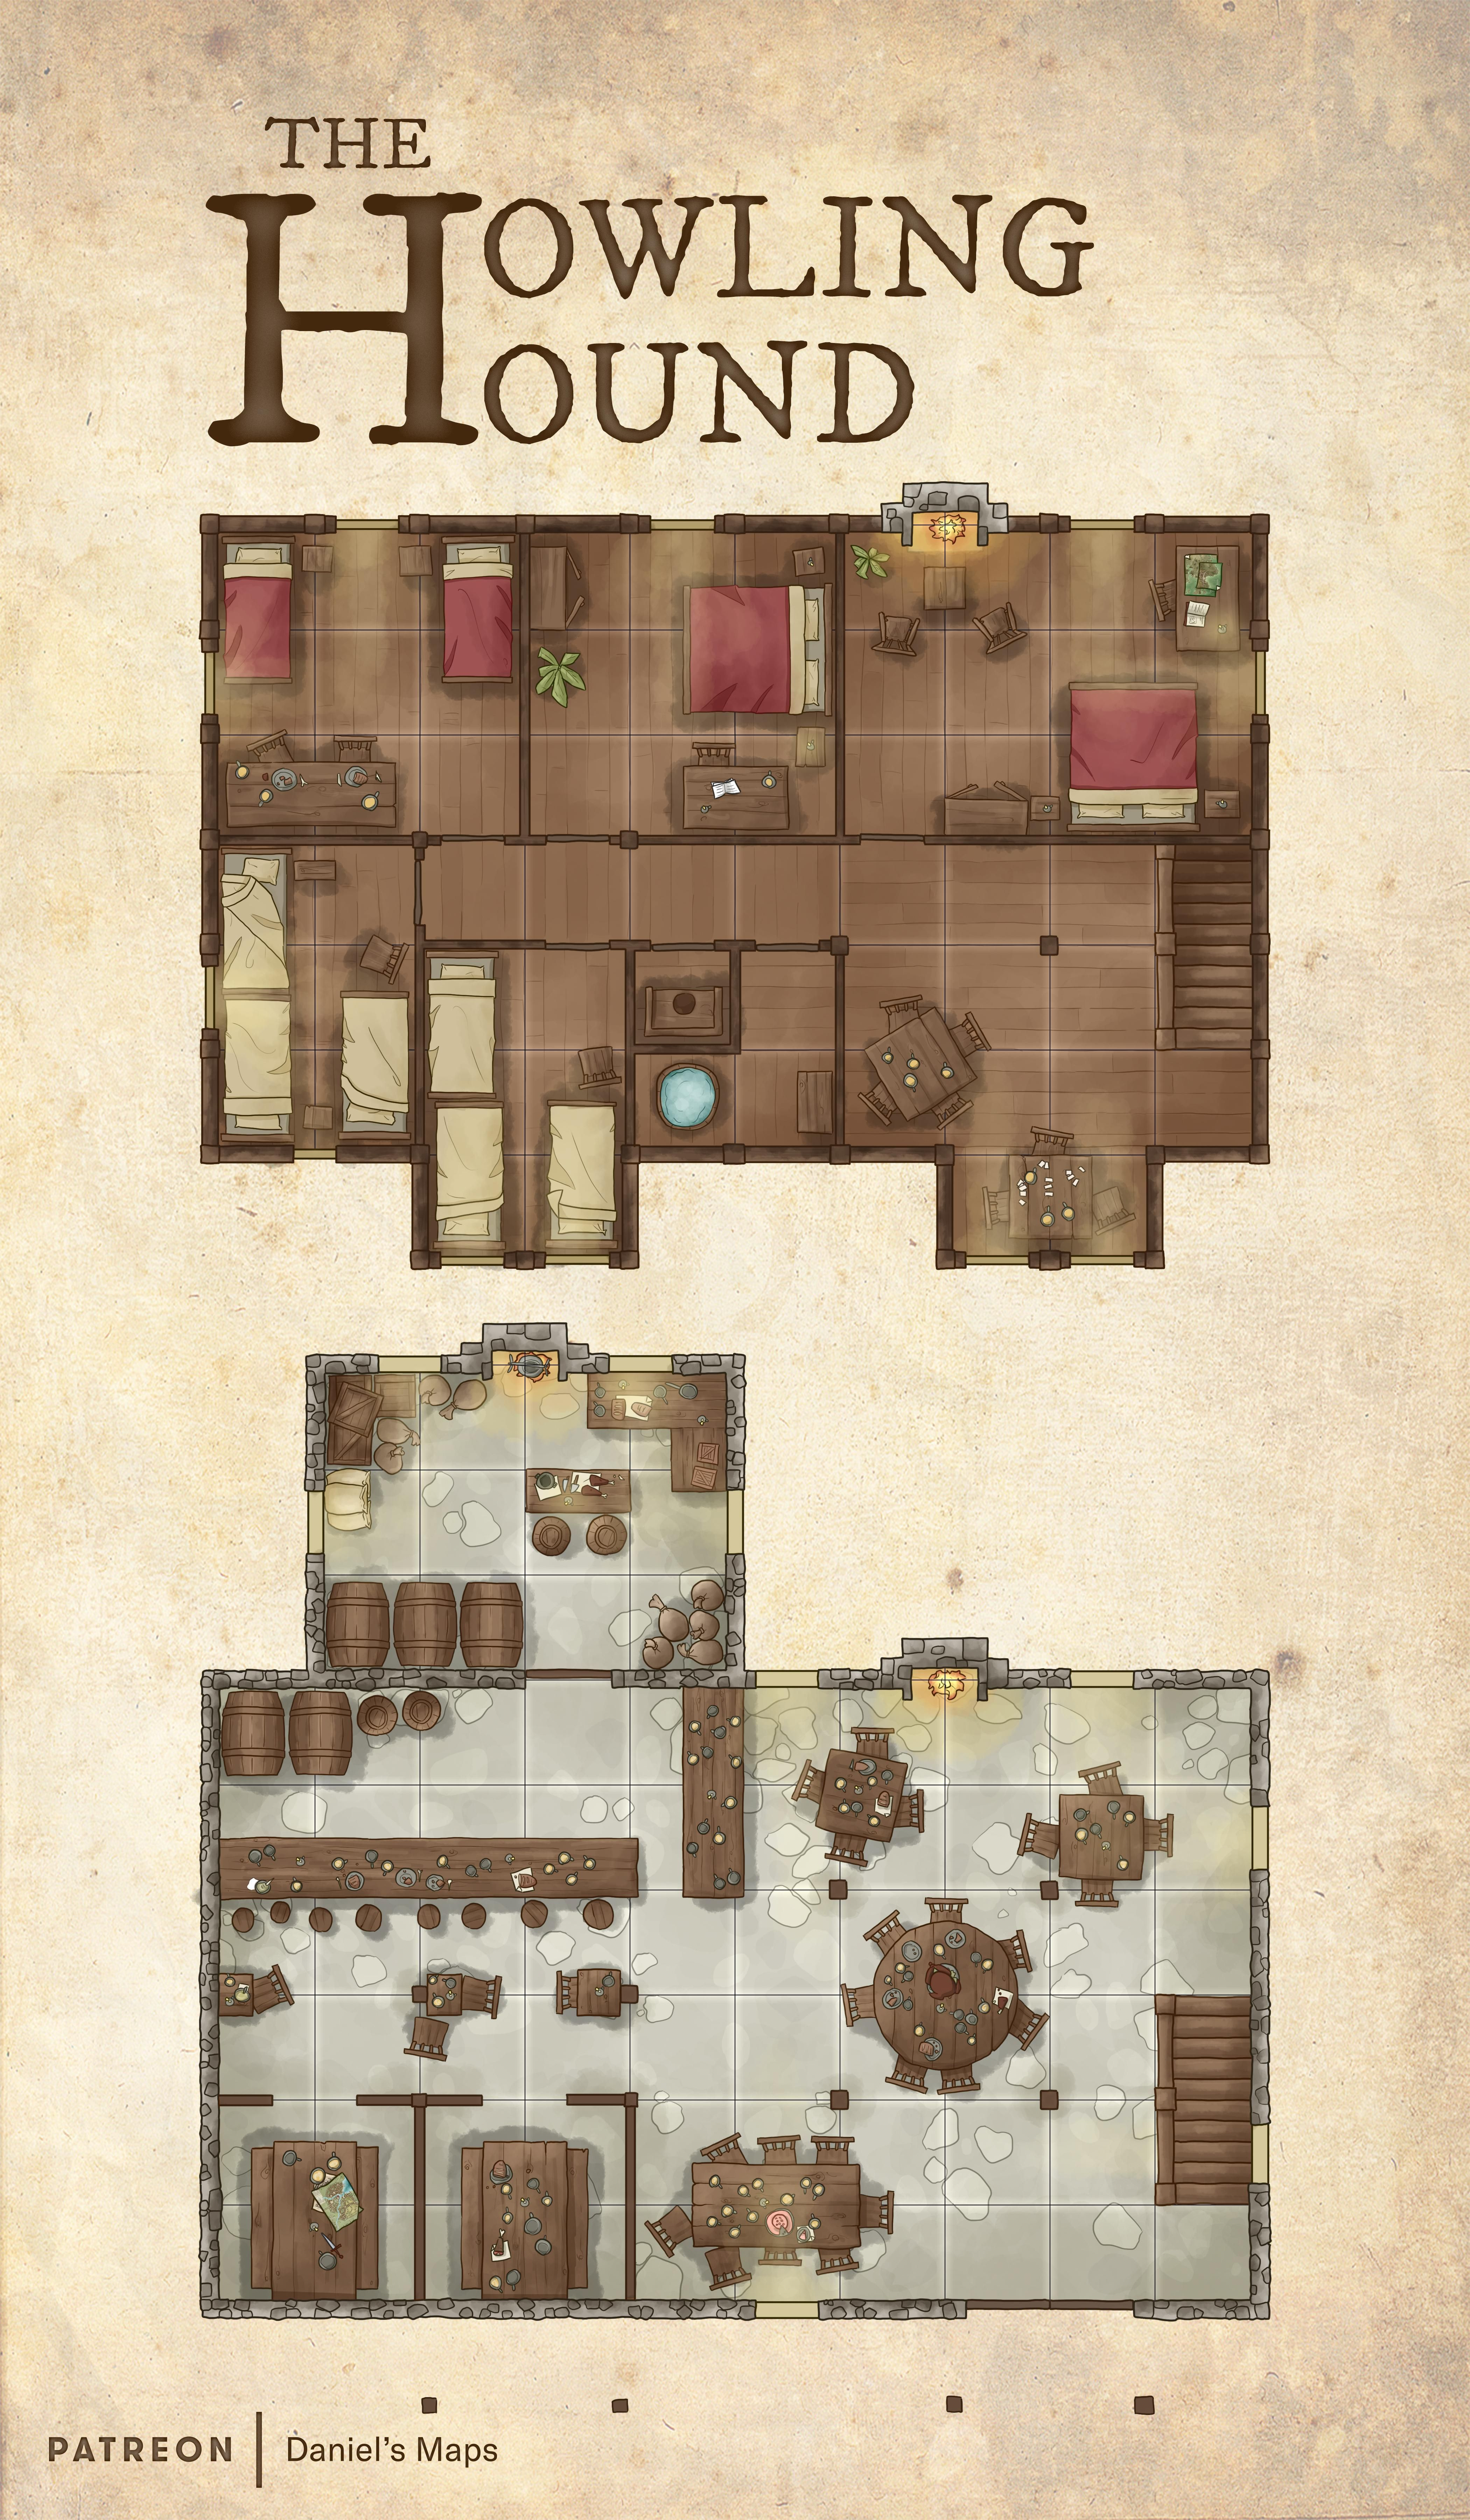 reddit: the front page of the internet | Fuckin DnD Maps or